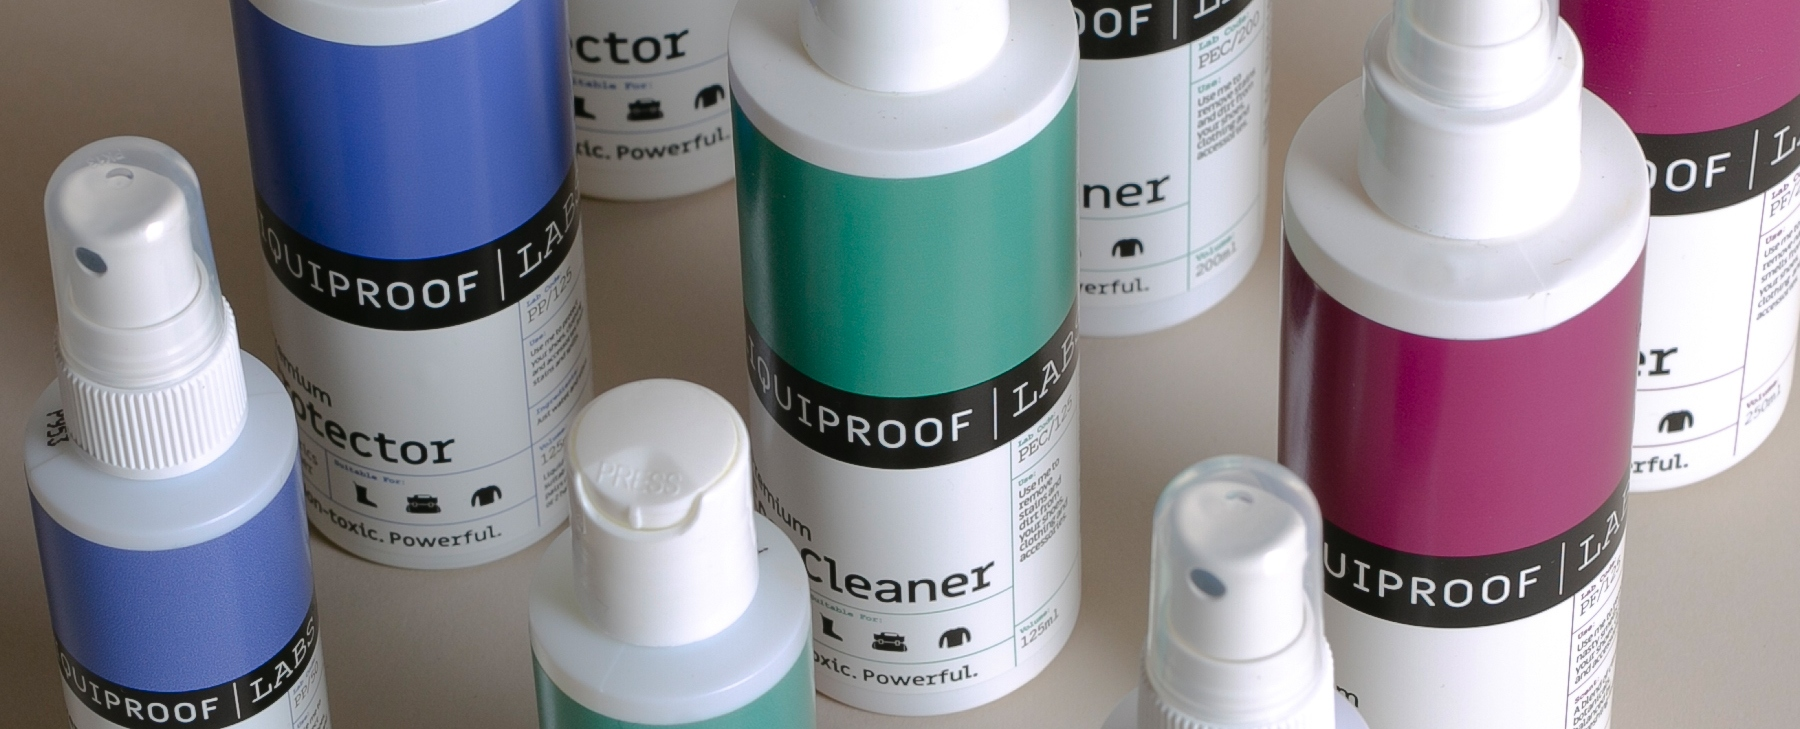 bottles of Liqiproof protector and cleaner showing new brand design with blocks of colour